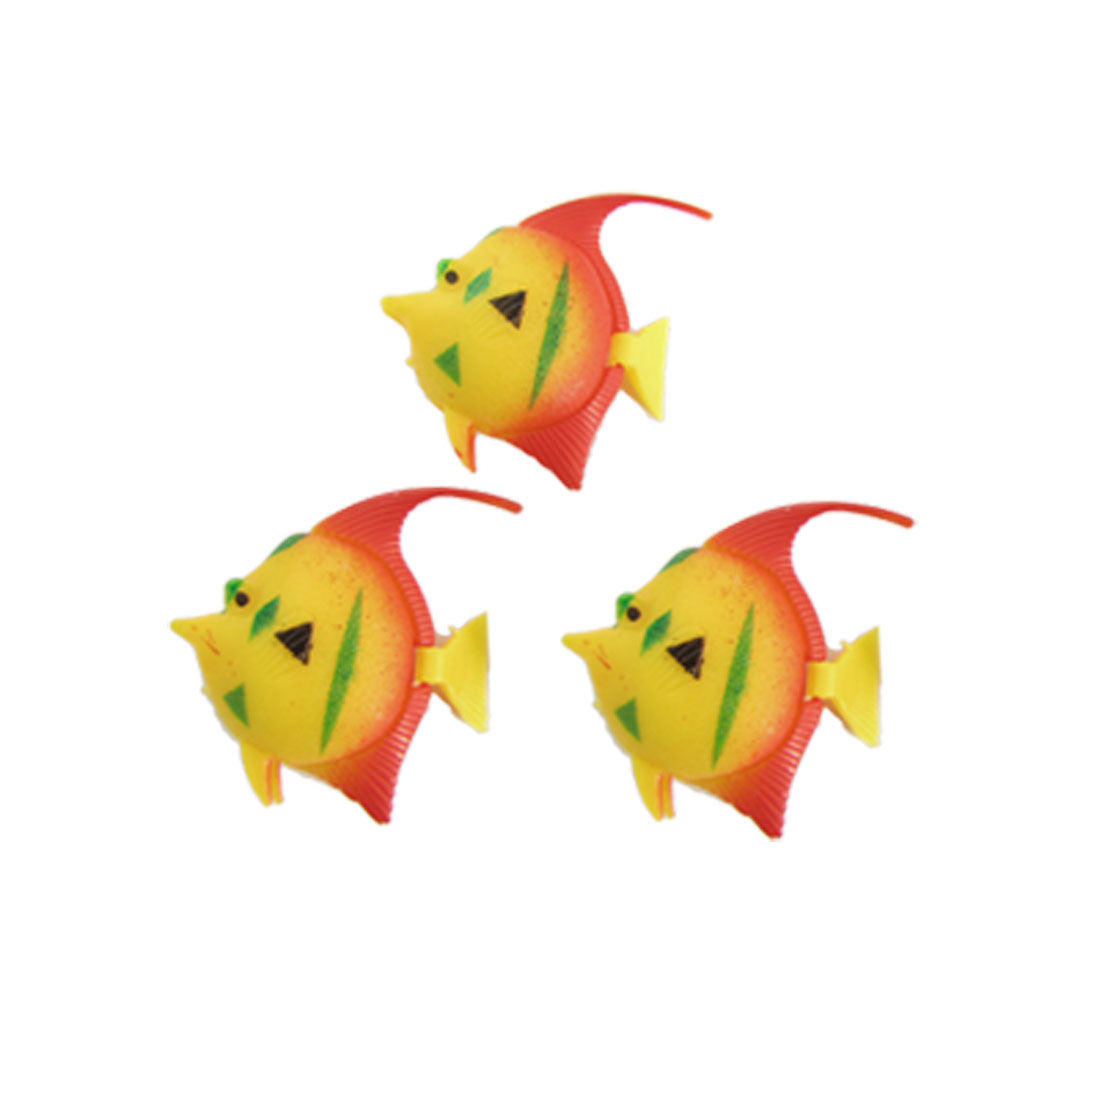 3 Pcs Aquarium Tank Plastic Floating Fish Decoration Yellow Red